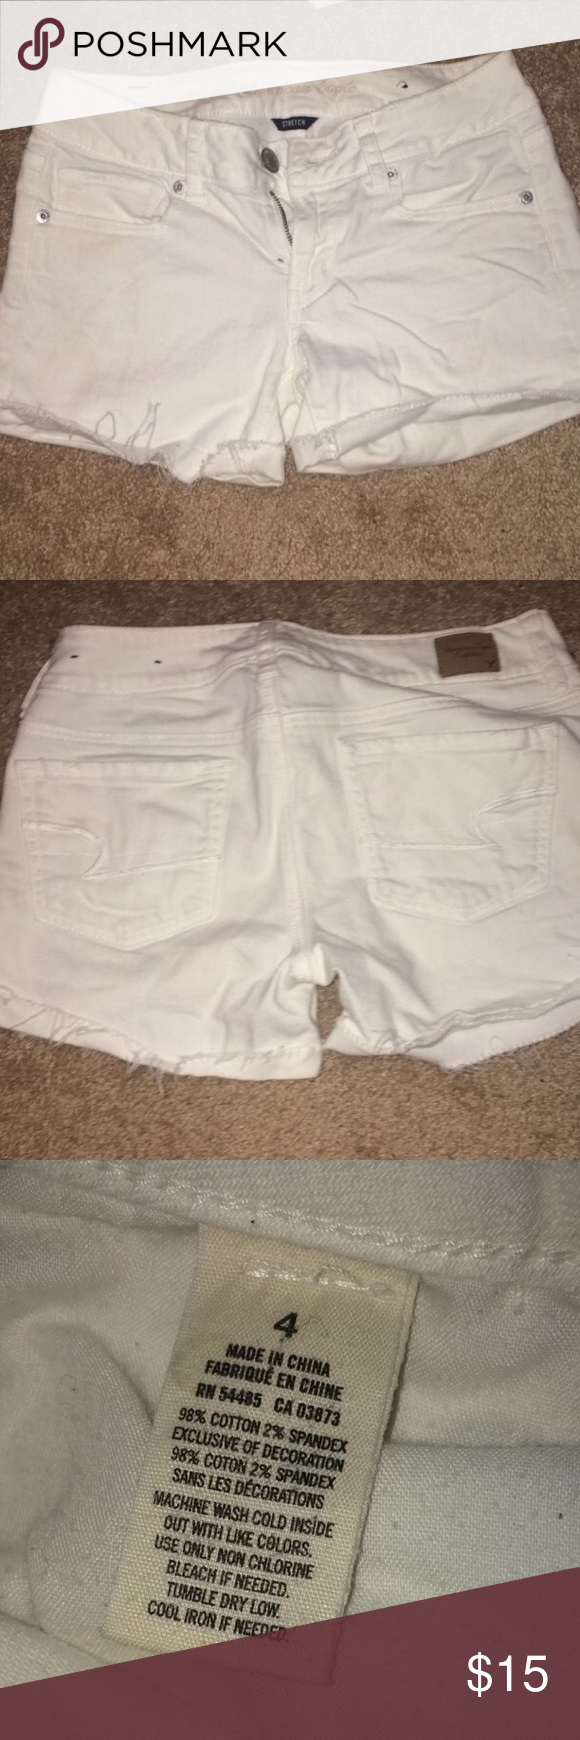 American Eagle Midi Shorts Bought these shorts last summer and loved them. Definitely a staple in every wardrobe and very wearable! These are midi style but can be rolled shorter if desired. American Eagle Outfitters Shorts